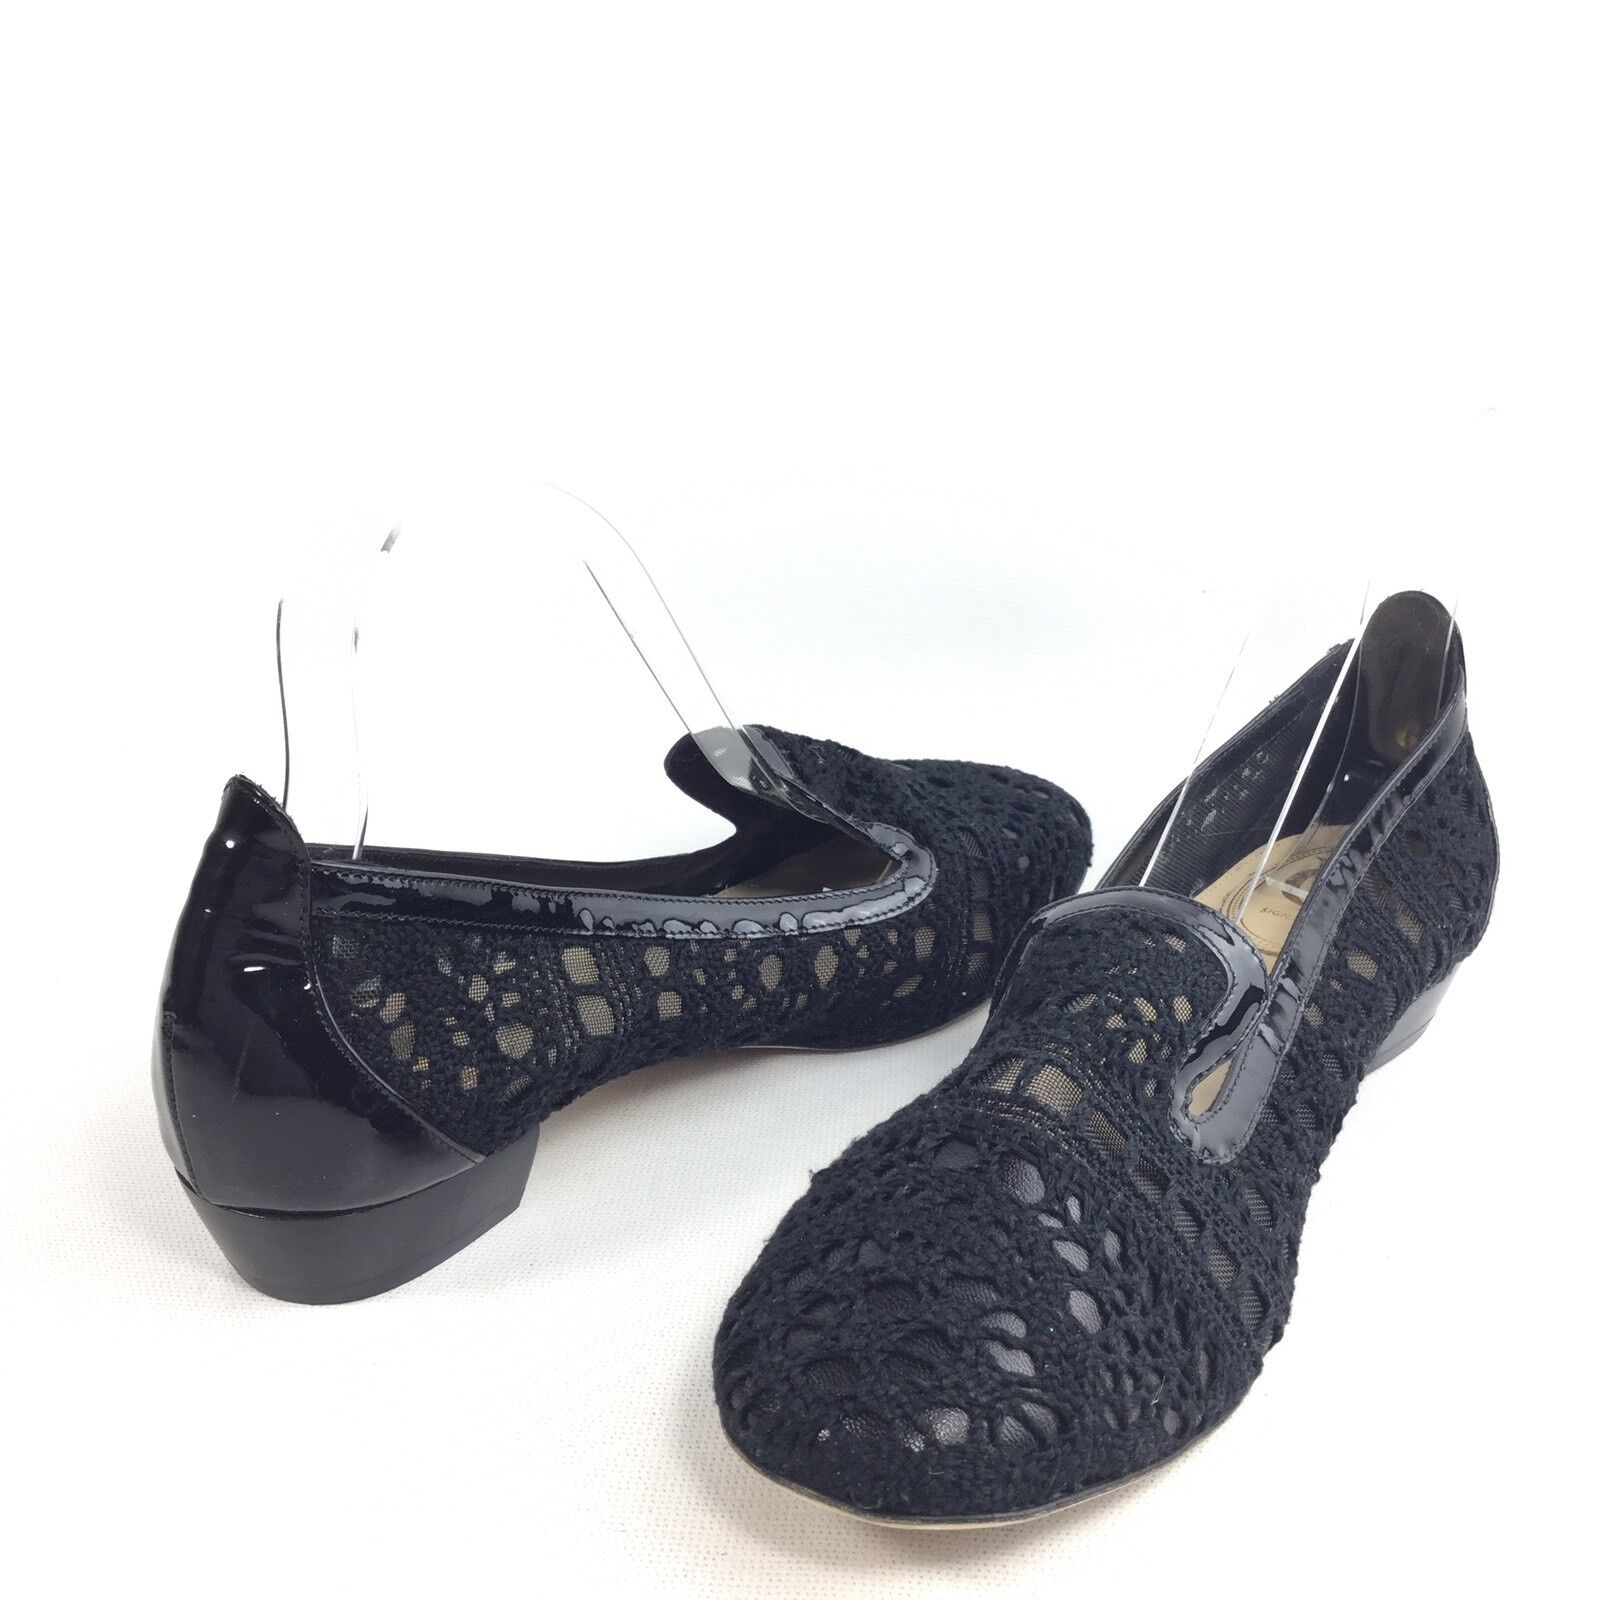 Vince Vince Vince Camuto Signature Womens Size 7.5 B Black Loafers Slip On shoes. 9be055